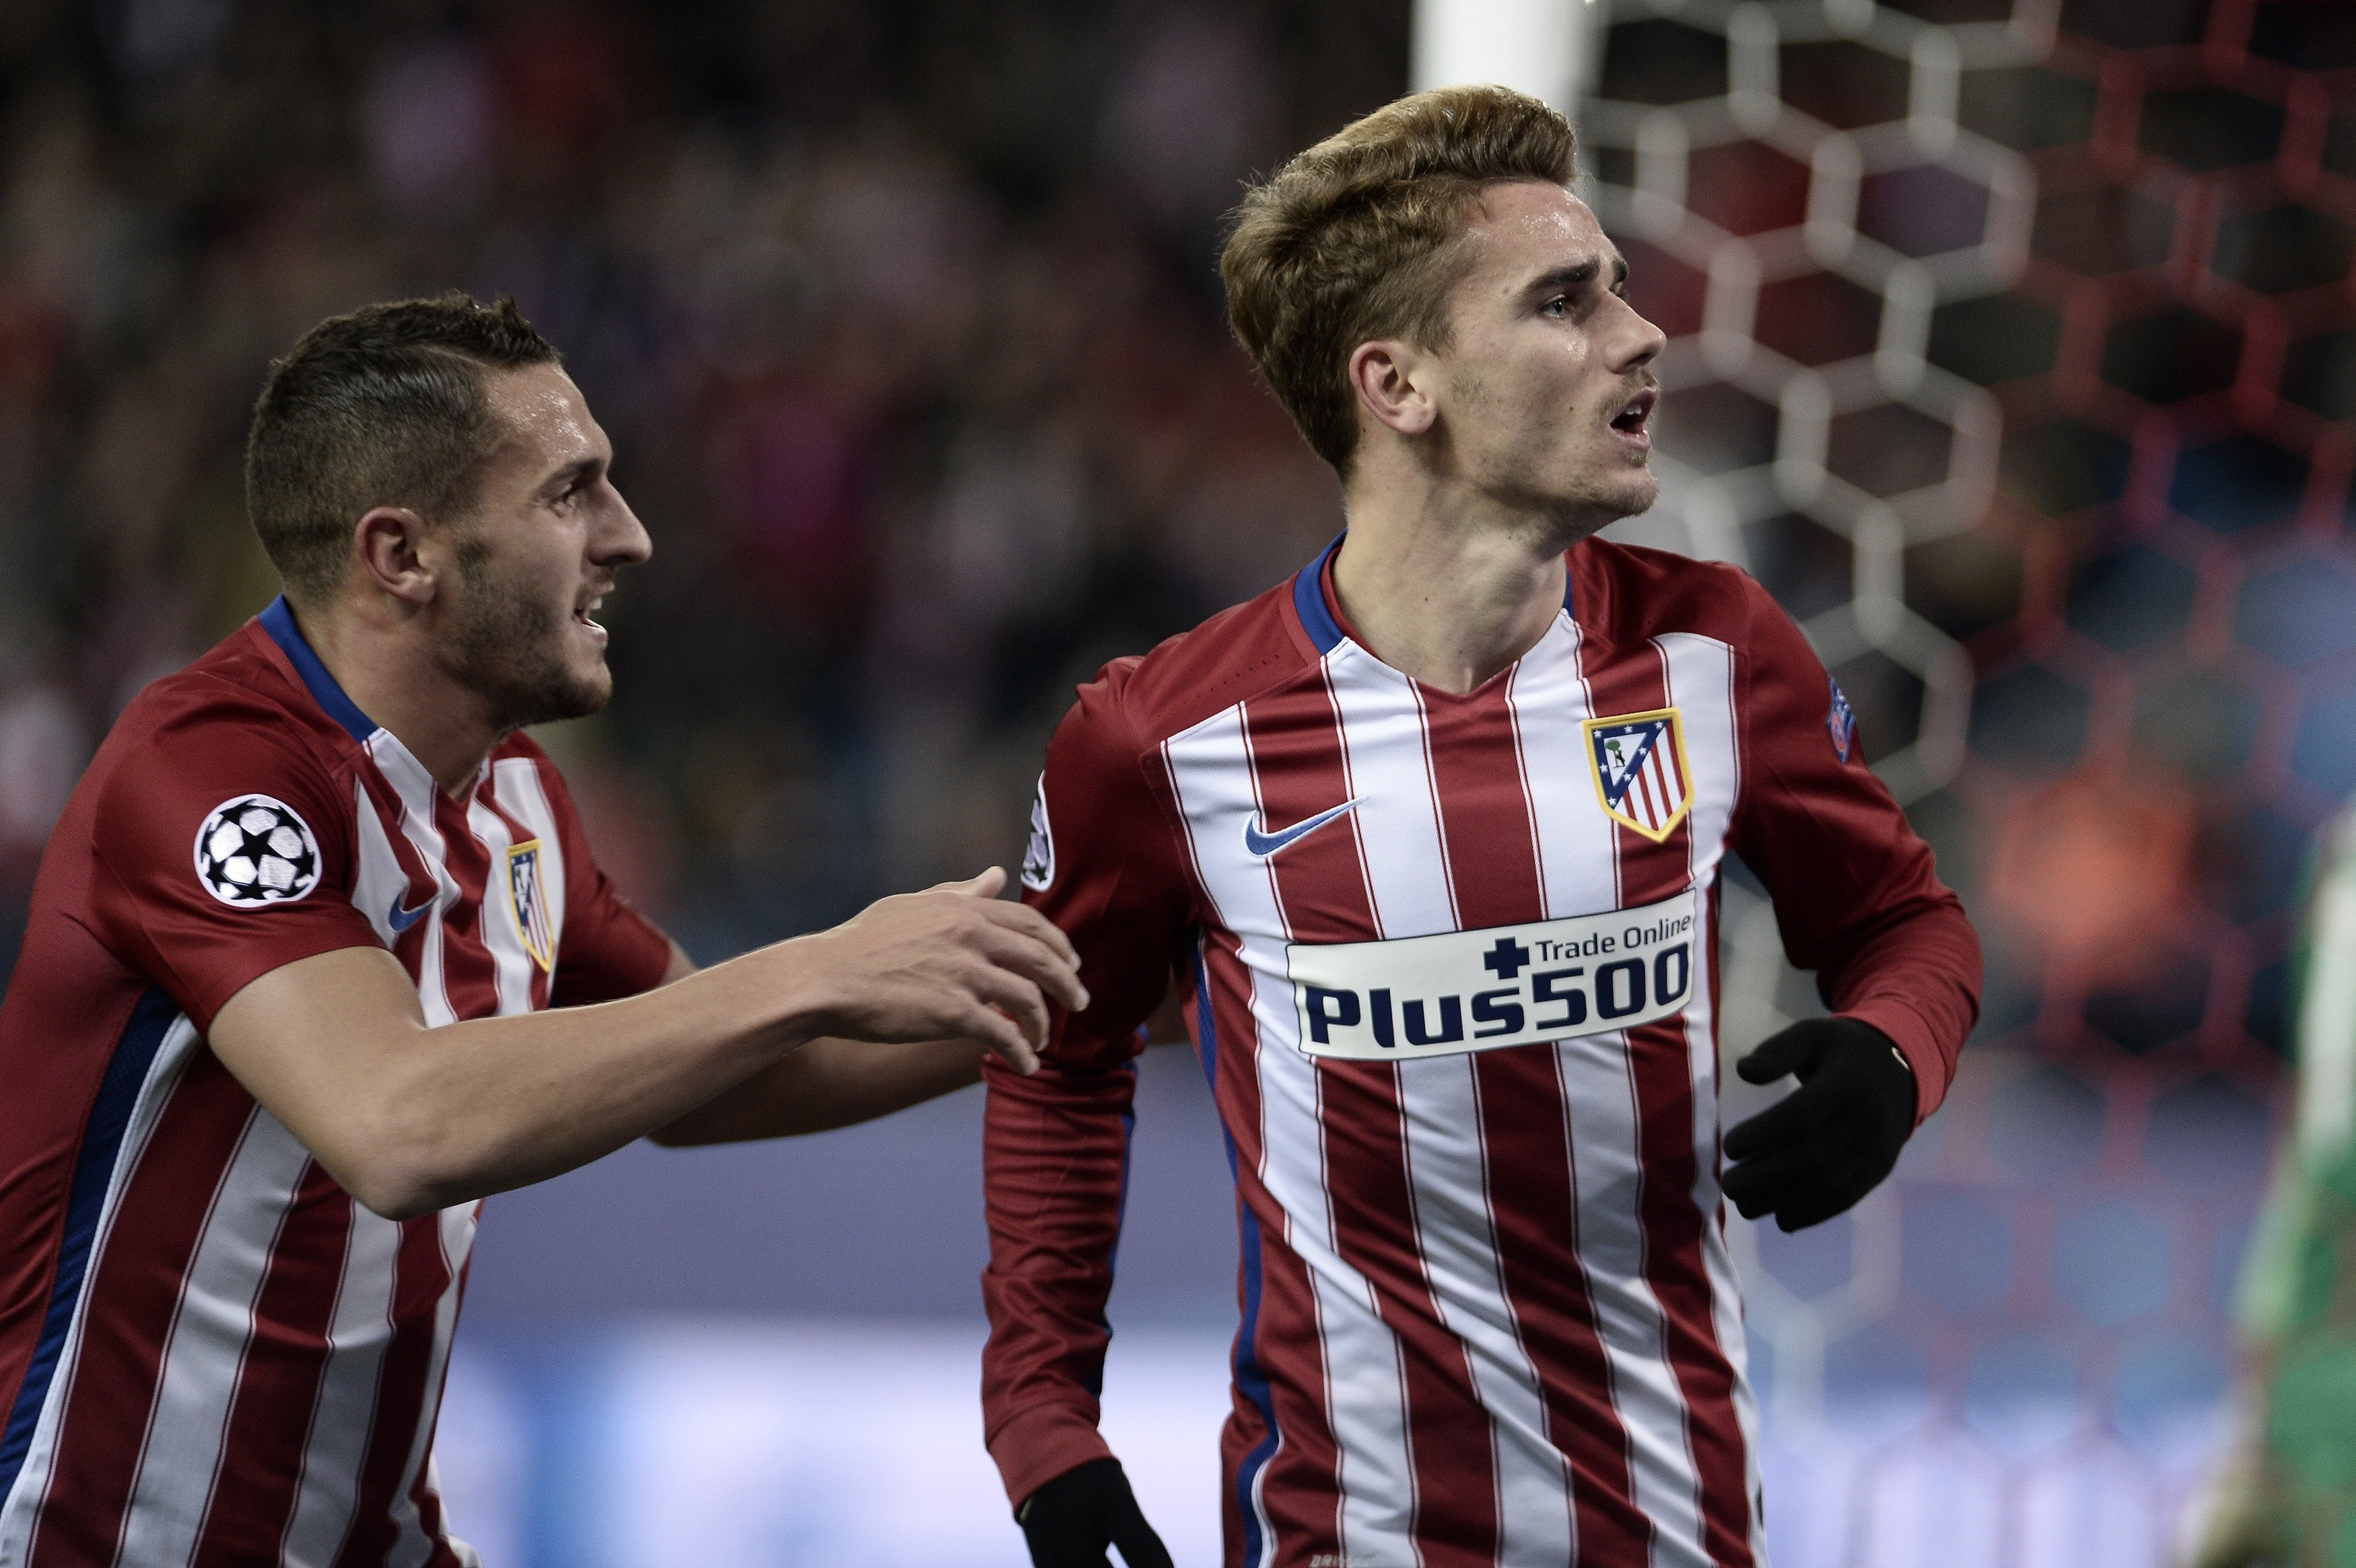 Transfer news: Chelsea tipped to sign Antoine Griezmann, Arsenal close in on Gabriel Jesus, Neven Subotic to Liverpool likely – reports